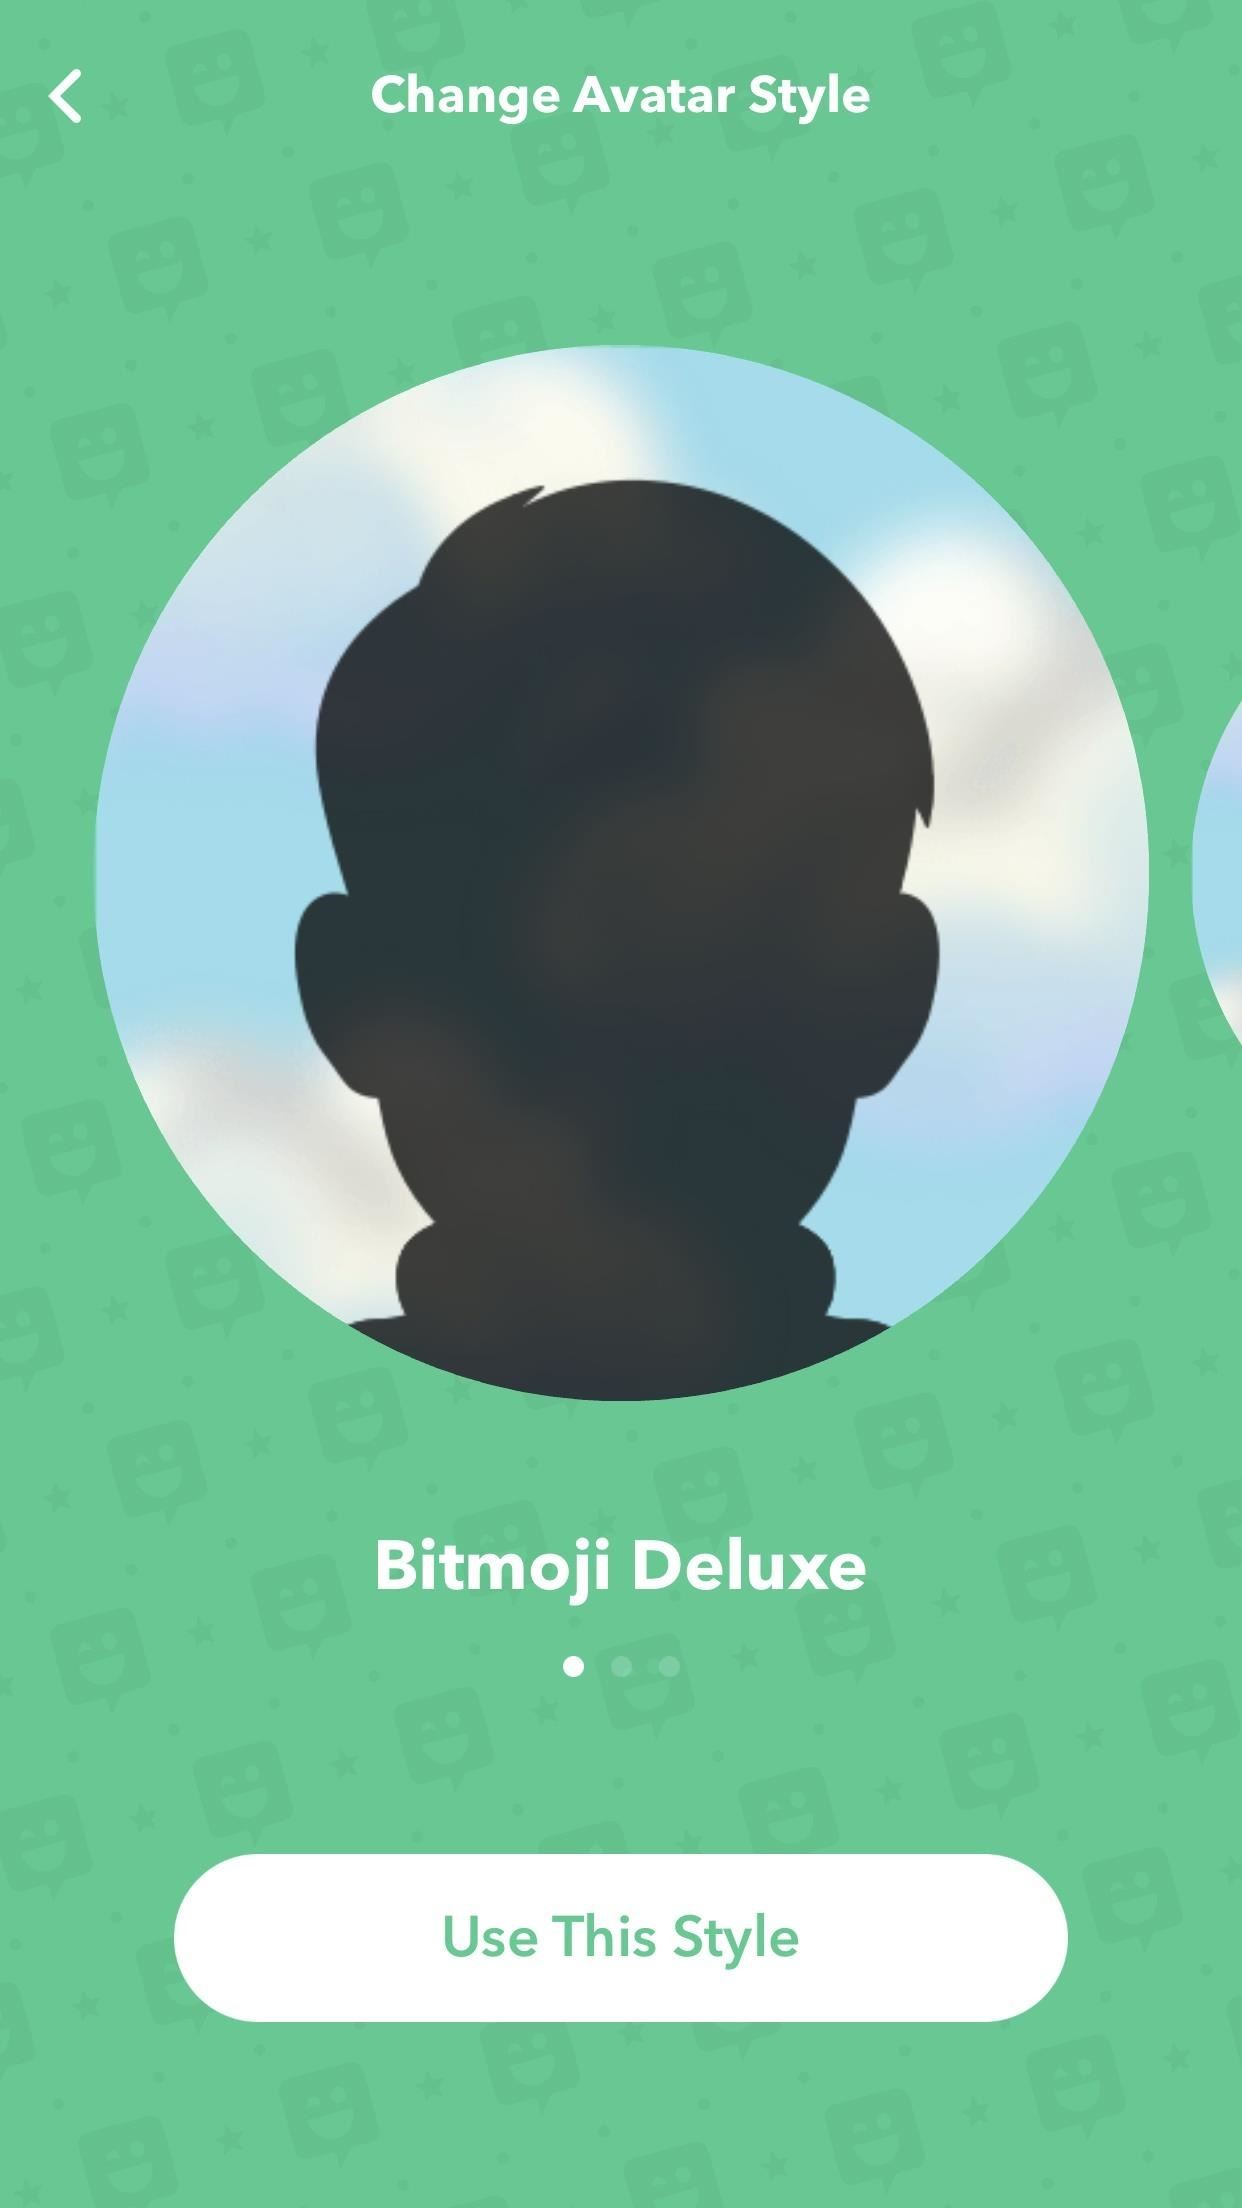 Snapchat 101: How to Use Your Selfies to Create a Bitmoji Deluxe